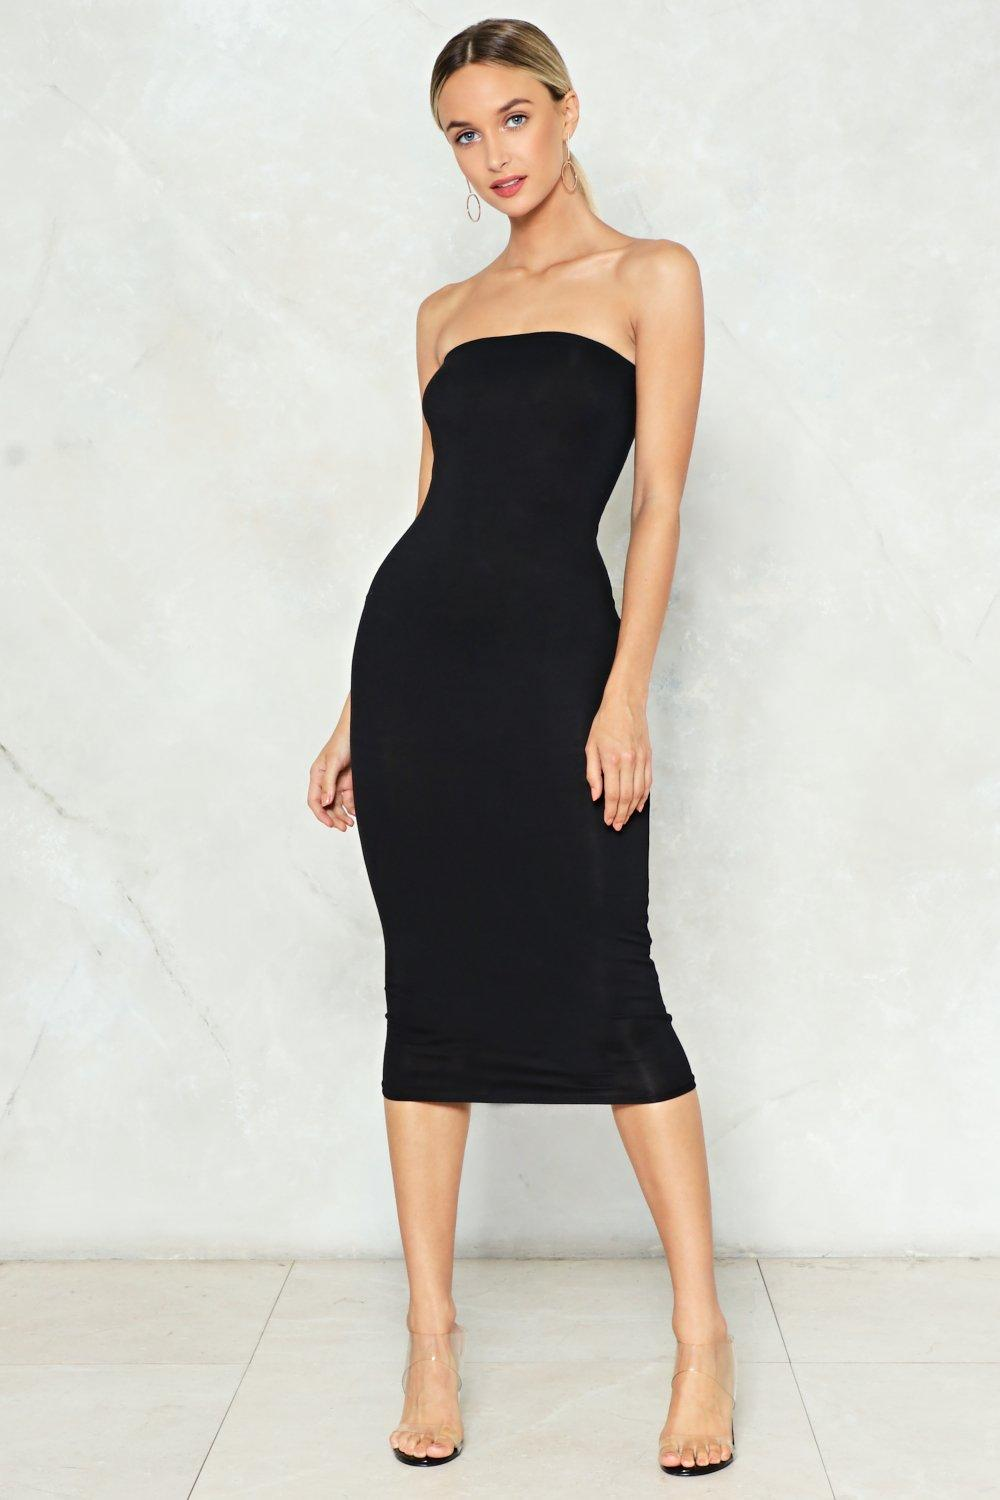 Strapless dresses simple as that strapless dress ZXBJHNL